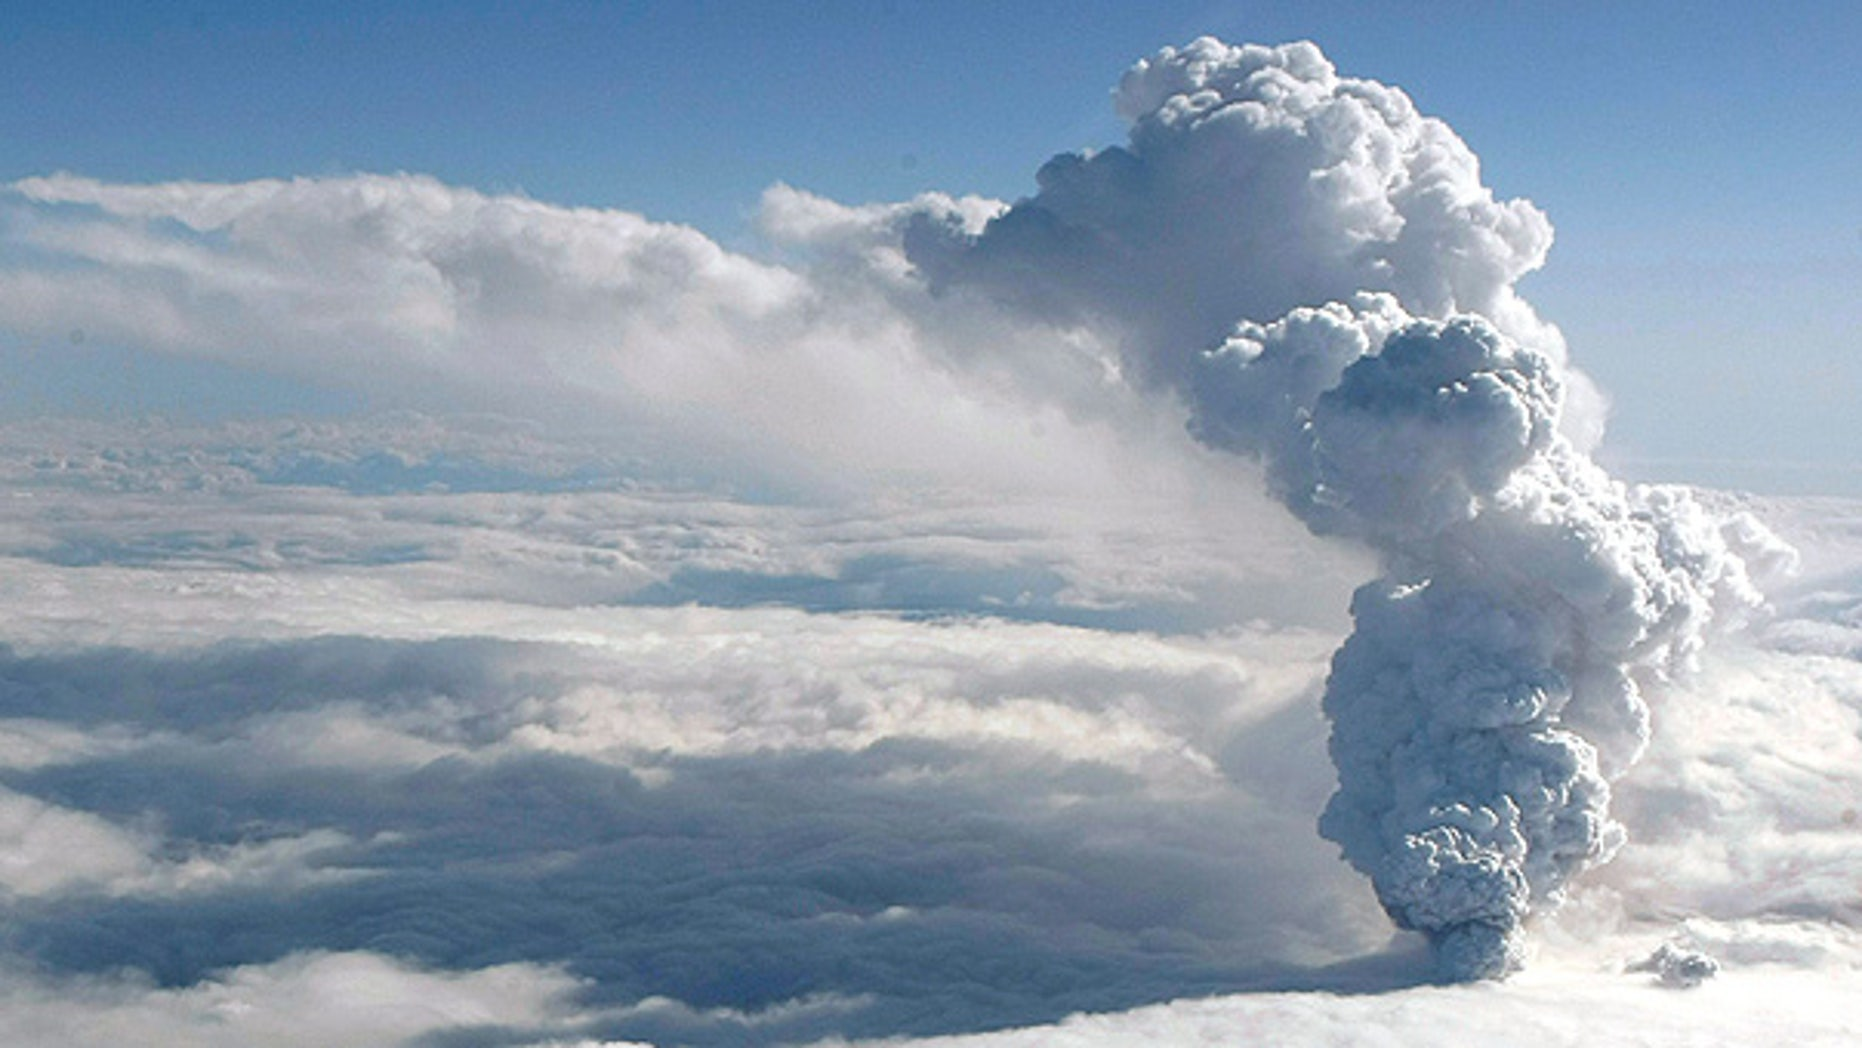 April 14: Smoke and steam rises from the volcano under the Eyjafjallajokull glacier in Iceland.